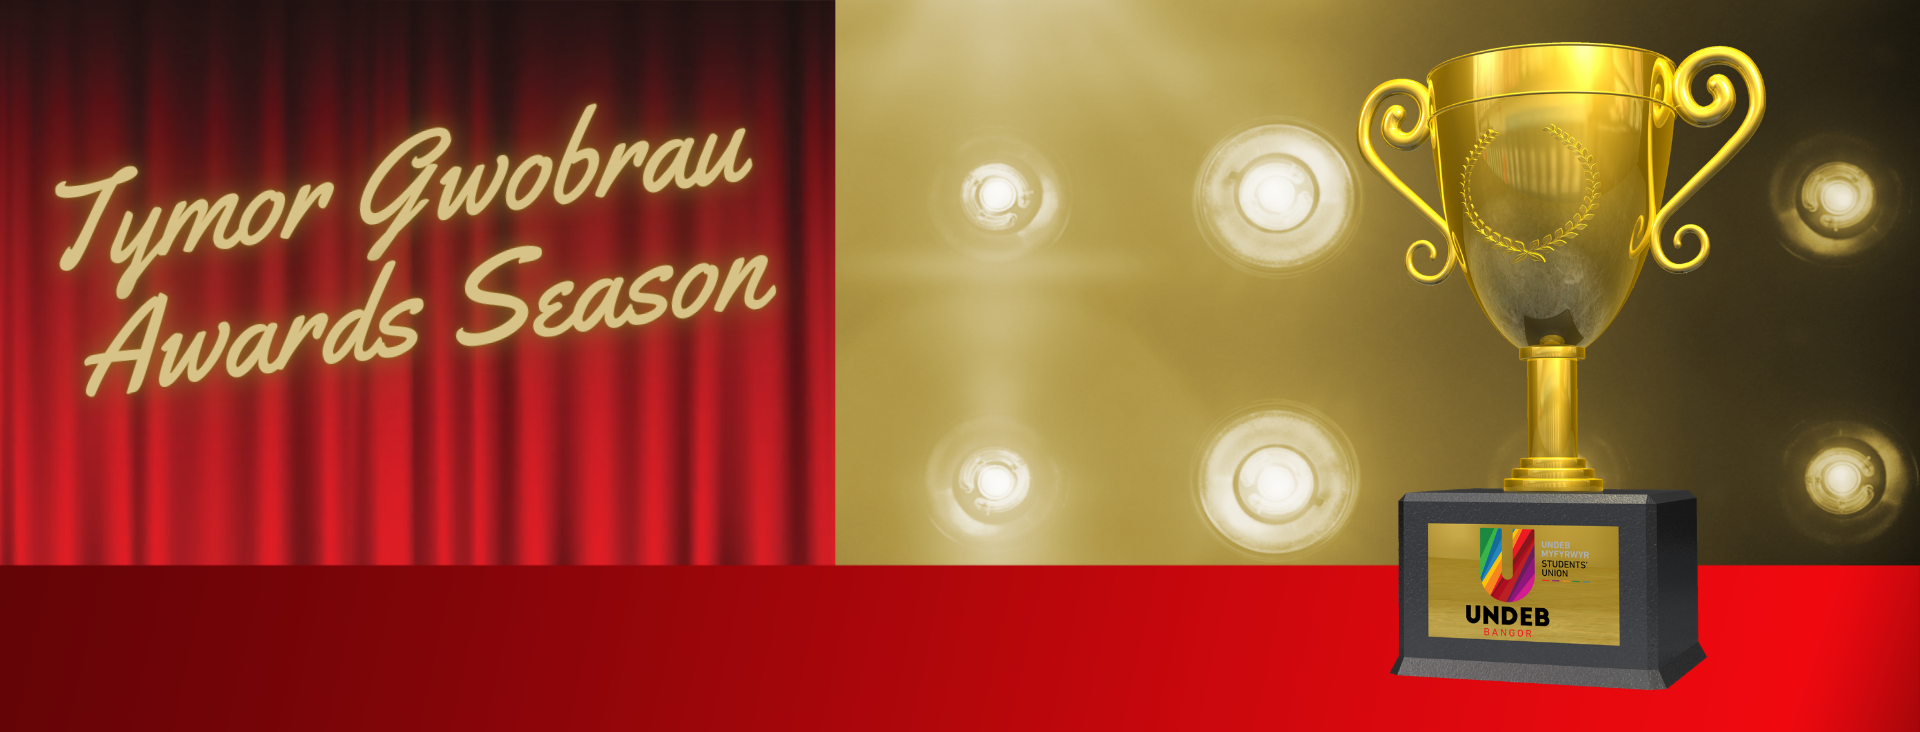 Awards season 2021 web banner